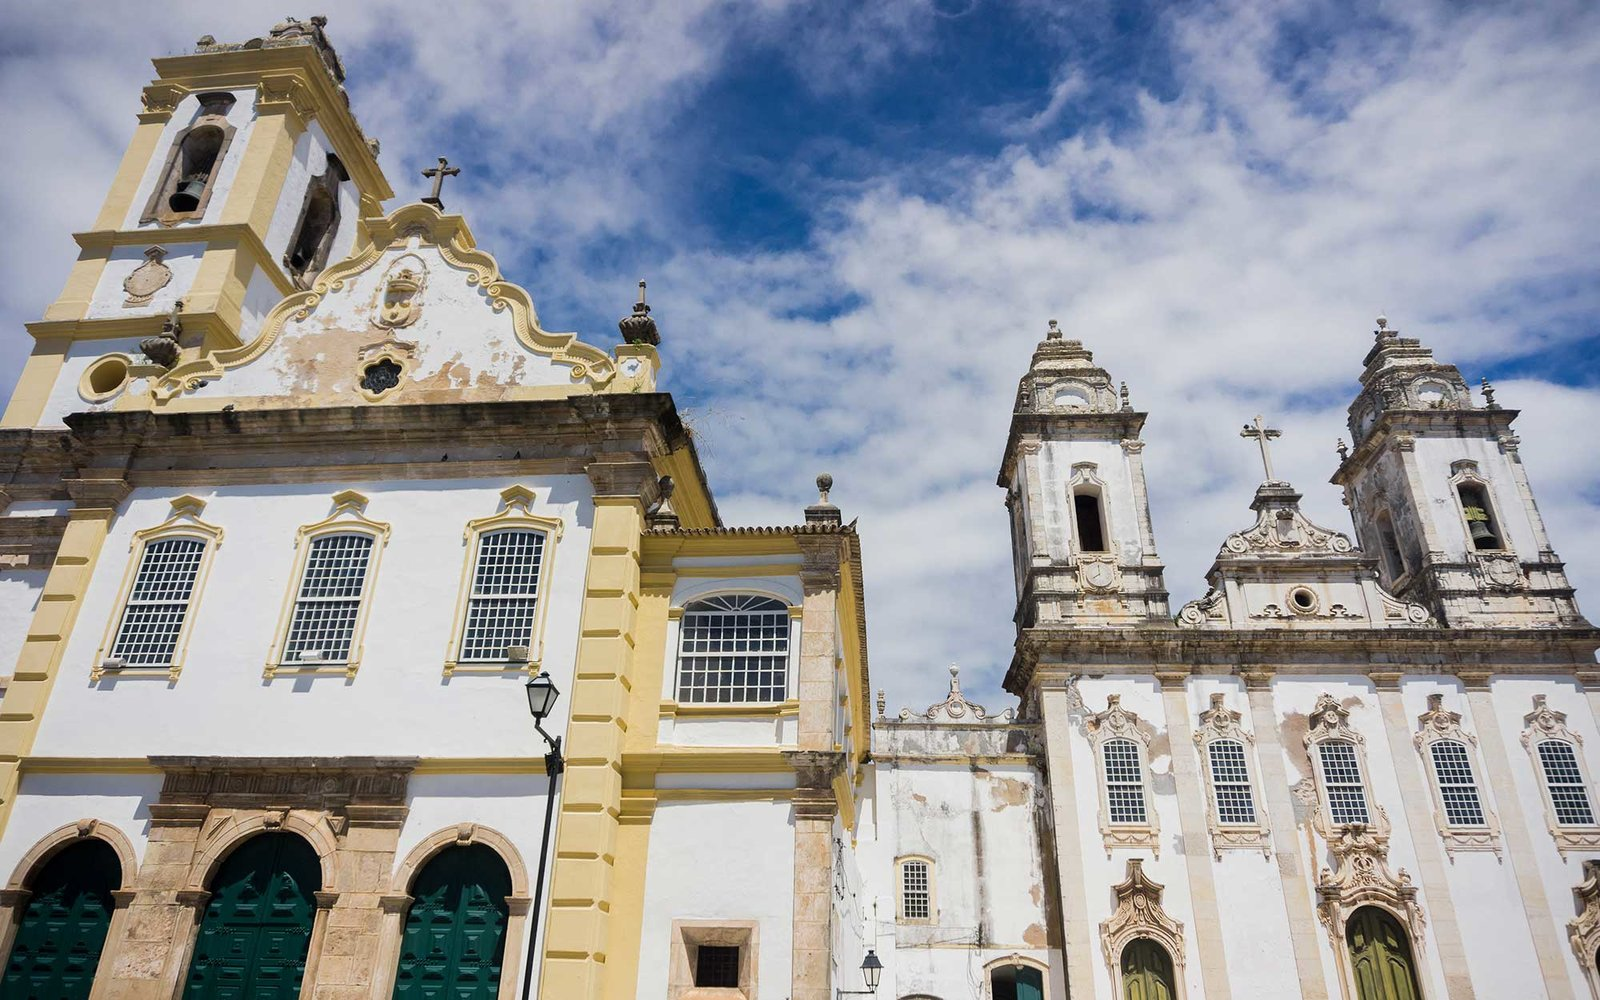 Brazil, Salvador de Bahia, Church in Pelourinho